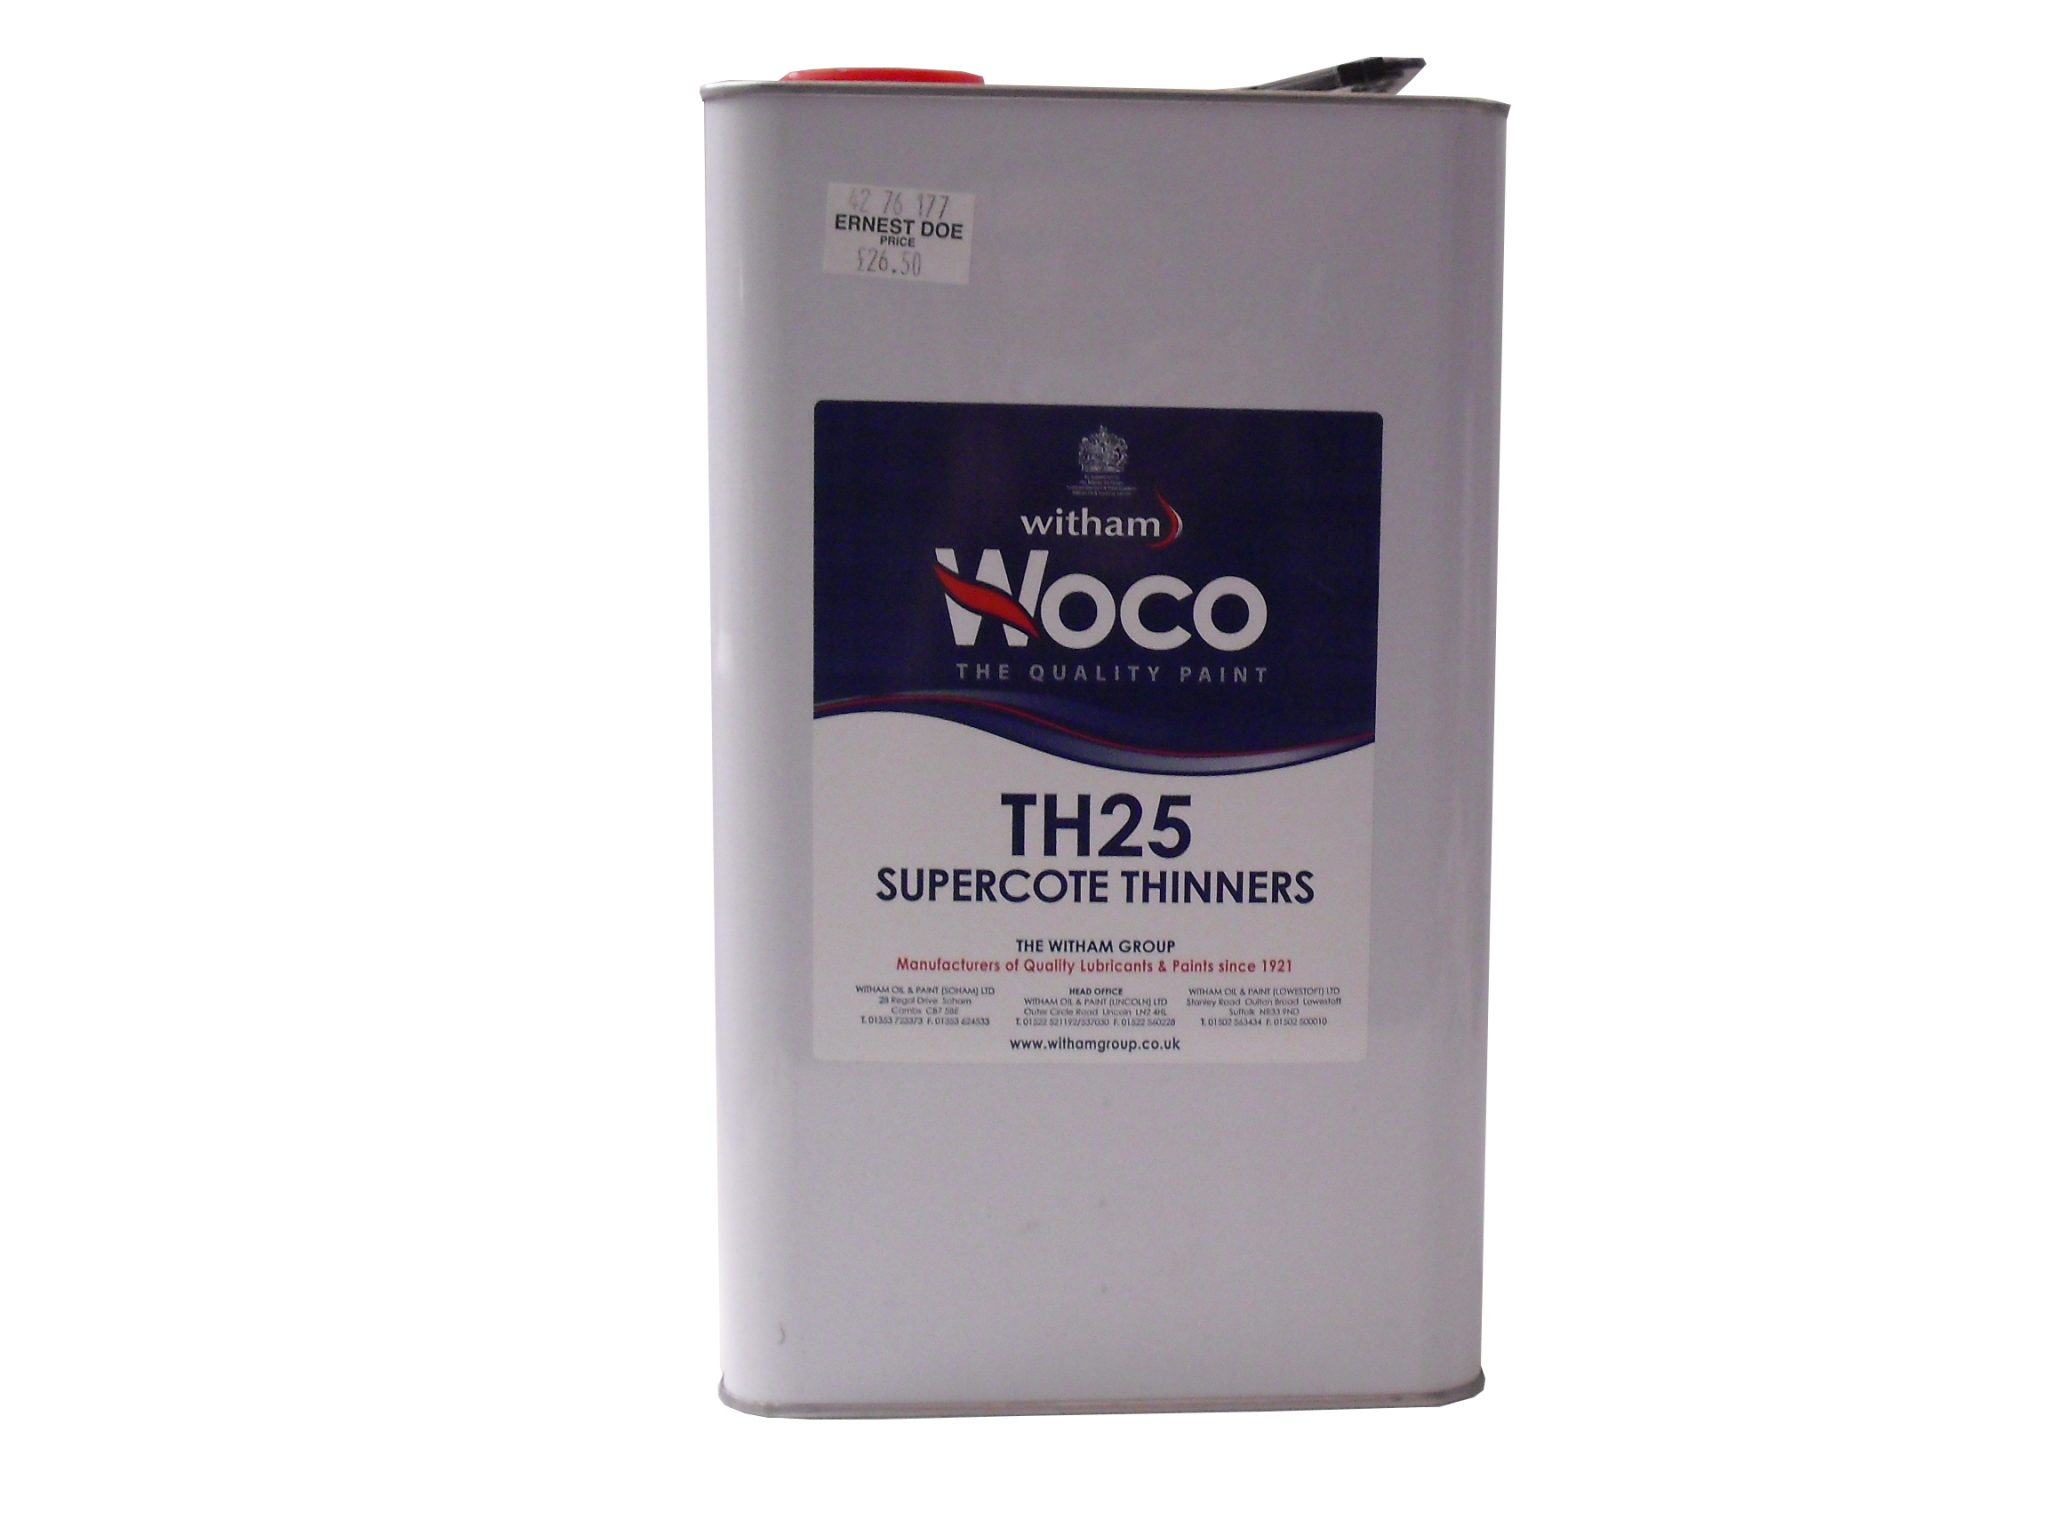 TH25 Supercote Thinners